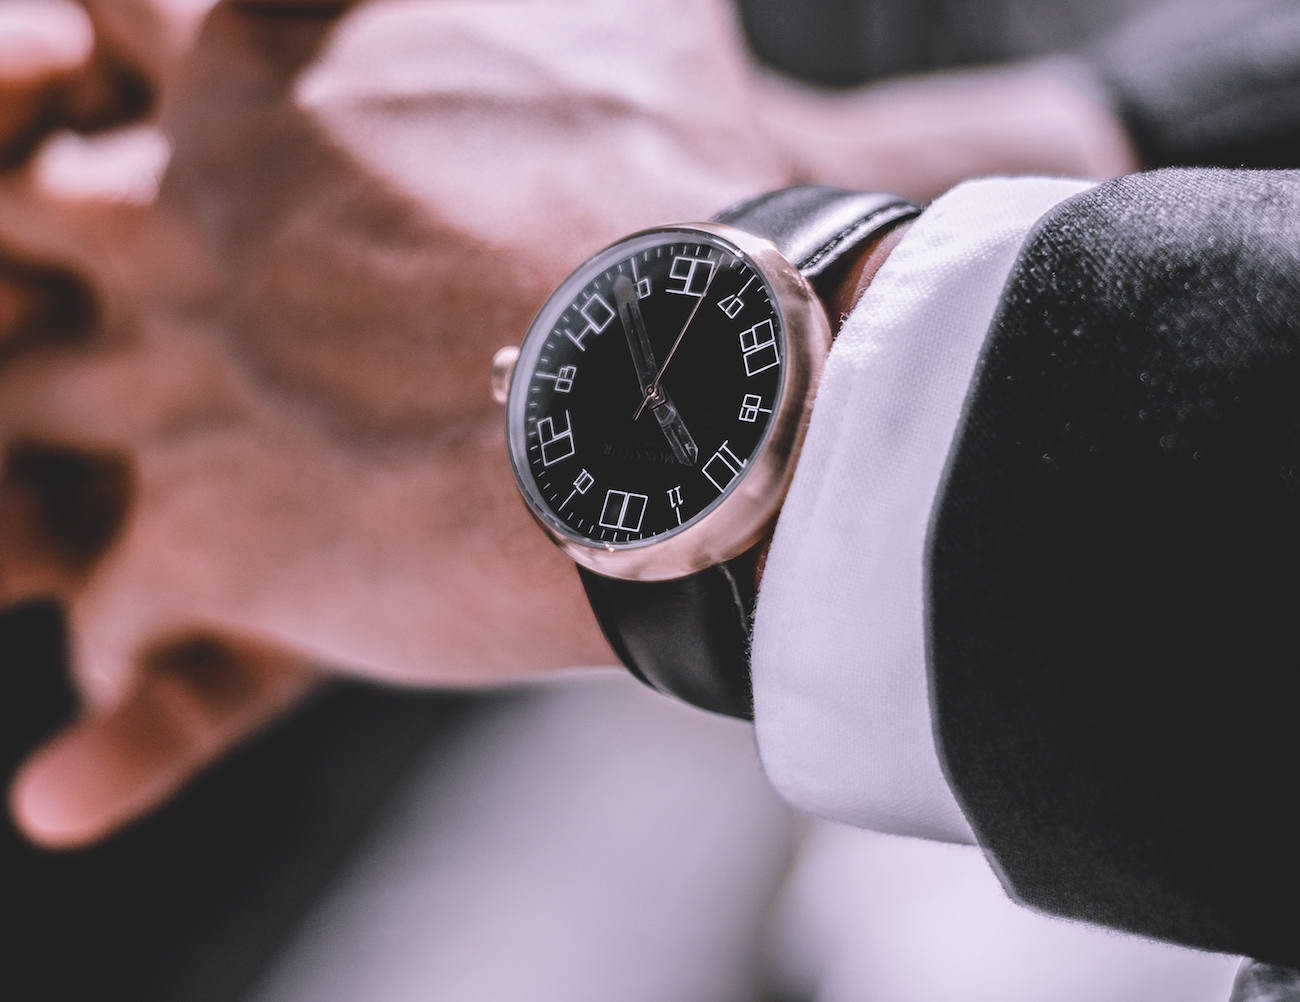 Monsieur Alliage Bold Watch Collection